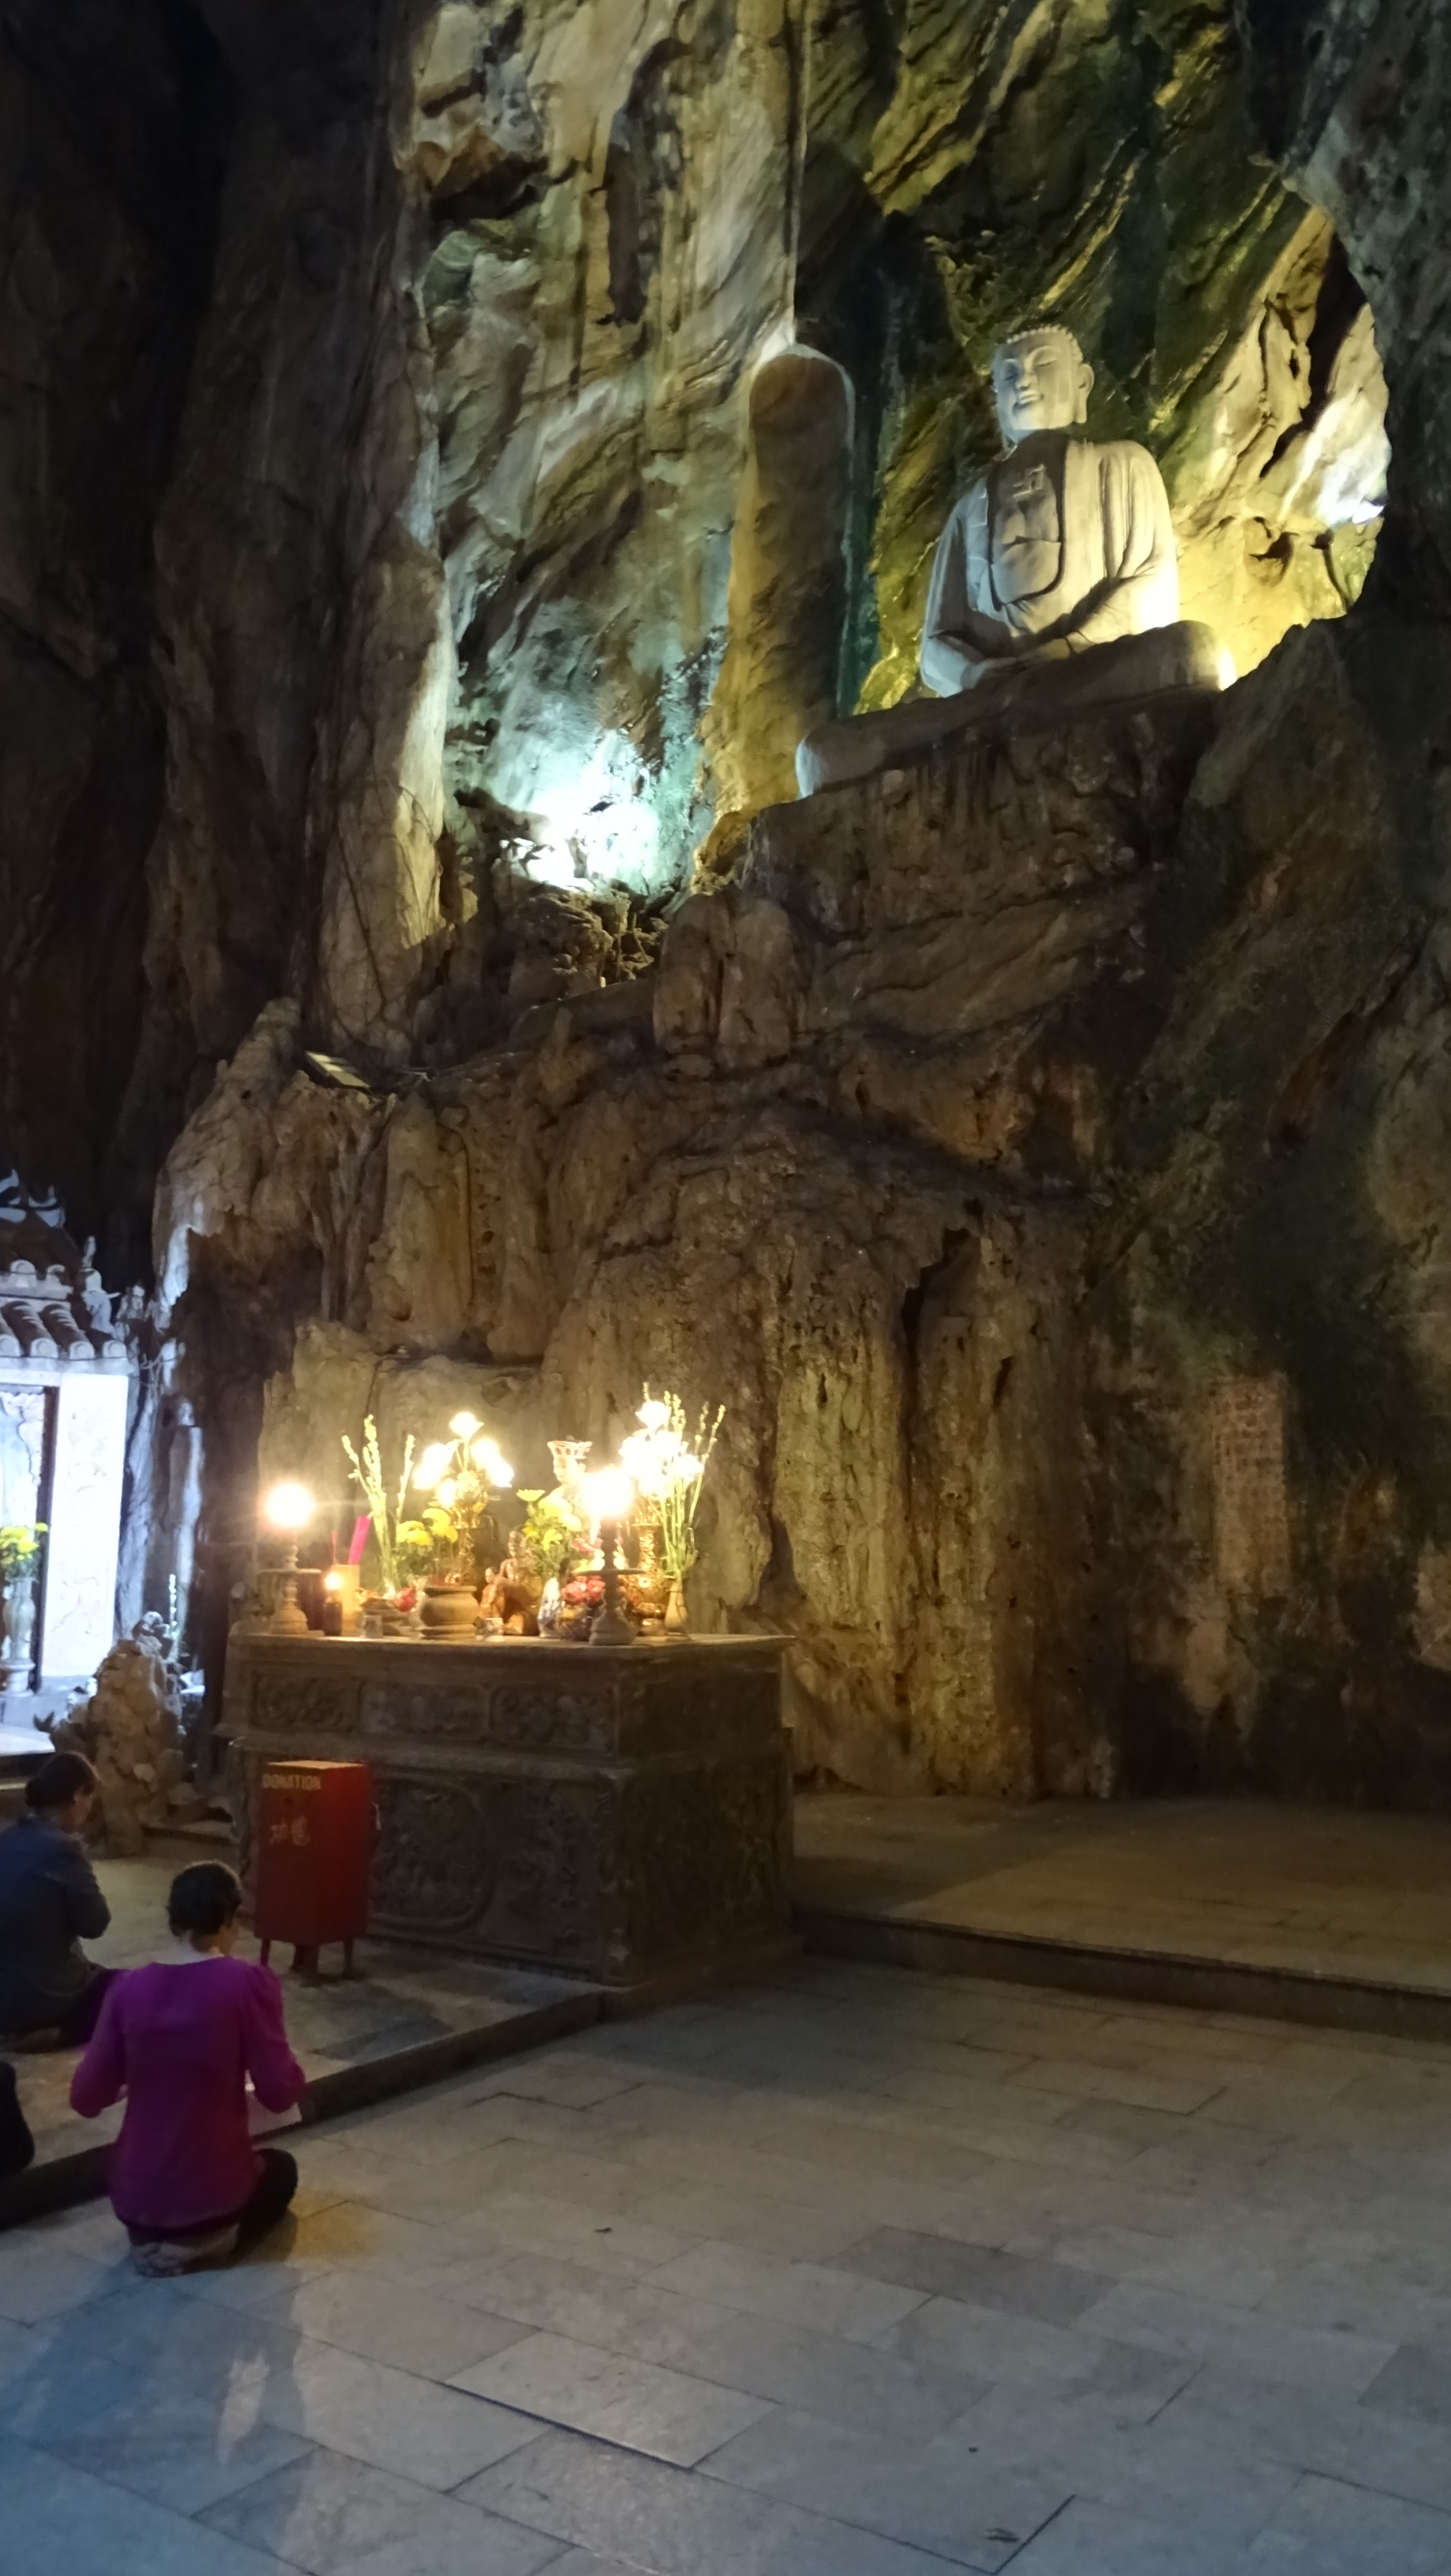 Buddhist devotees praying in front of an altar inside Hueyn Khong Cave in the Marble Mountains